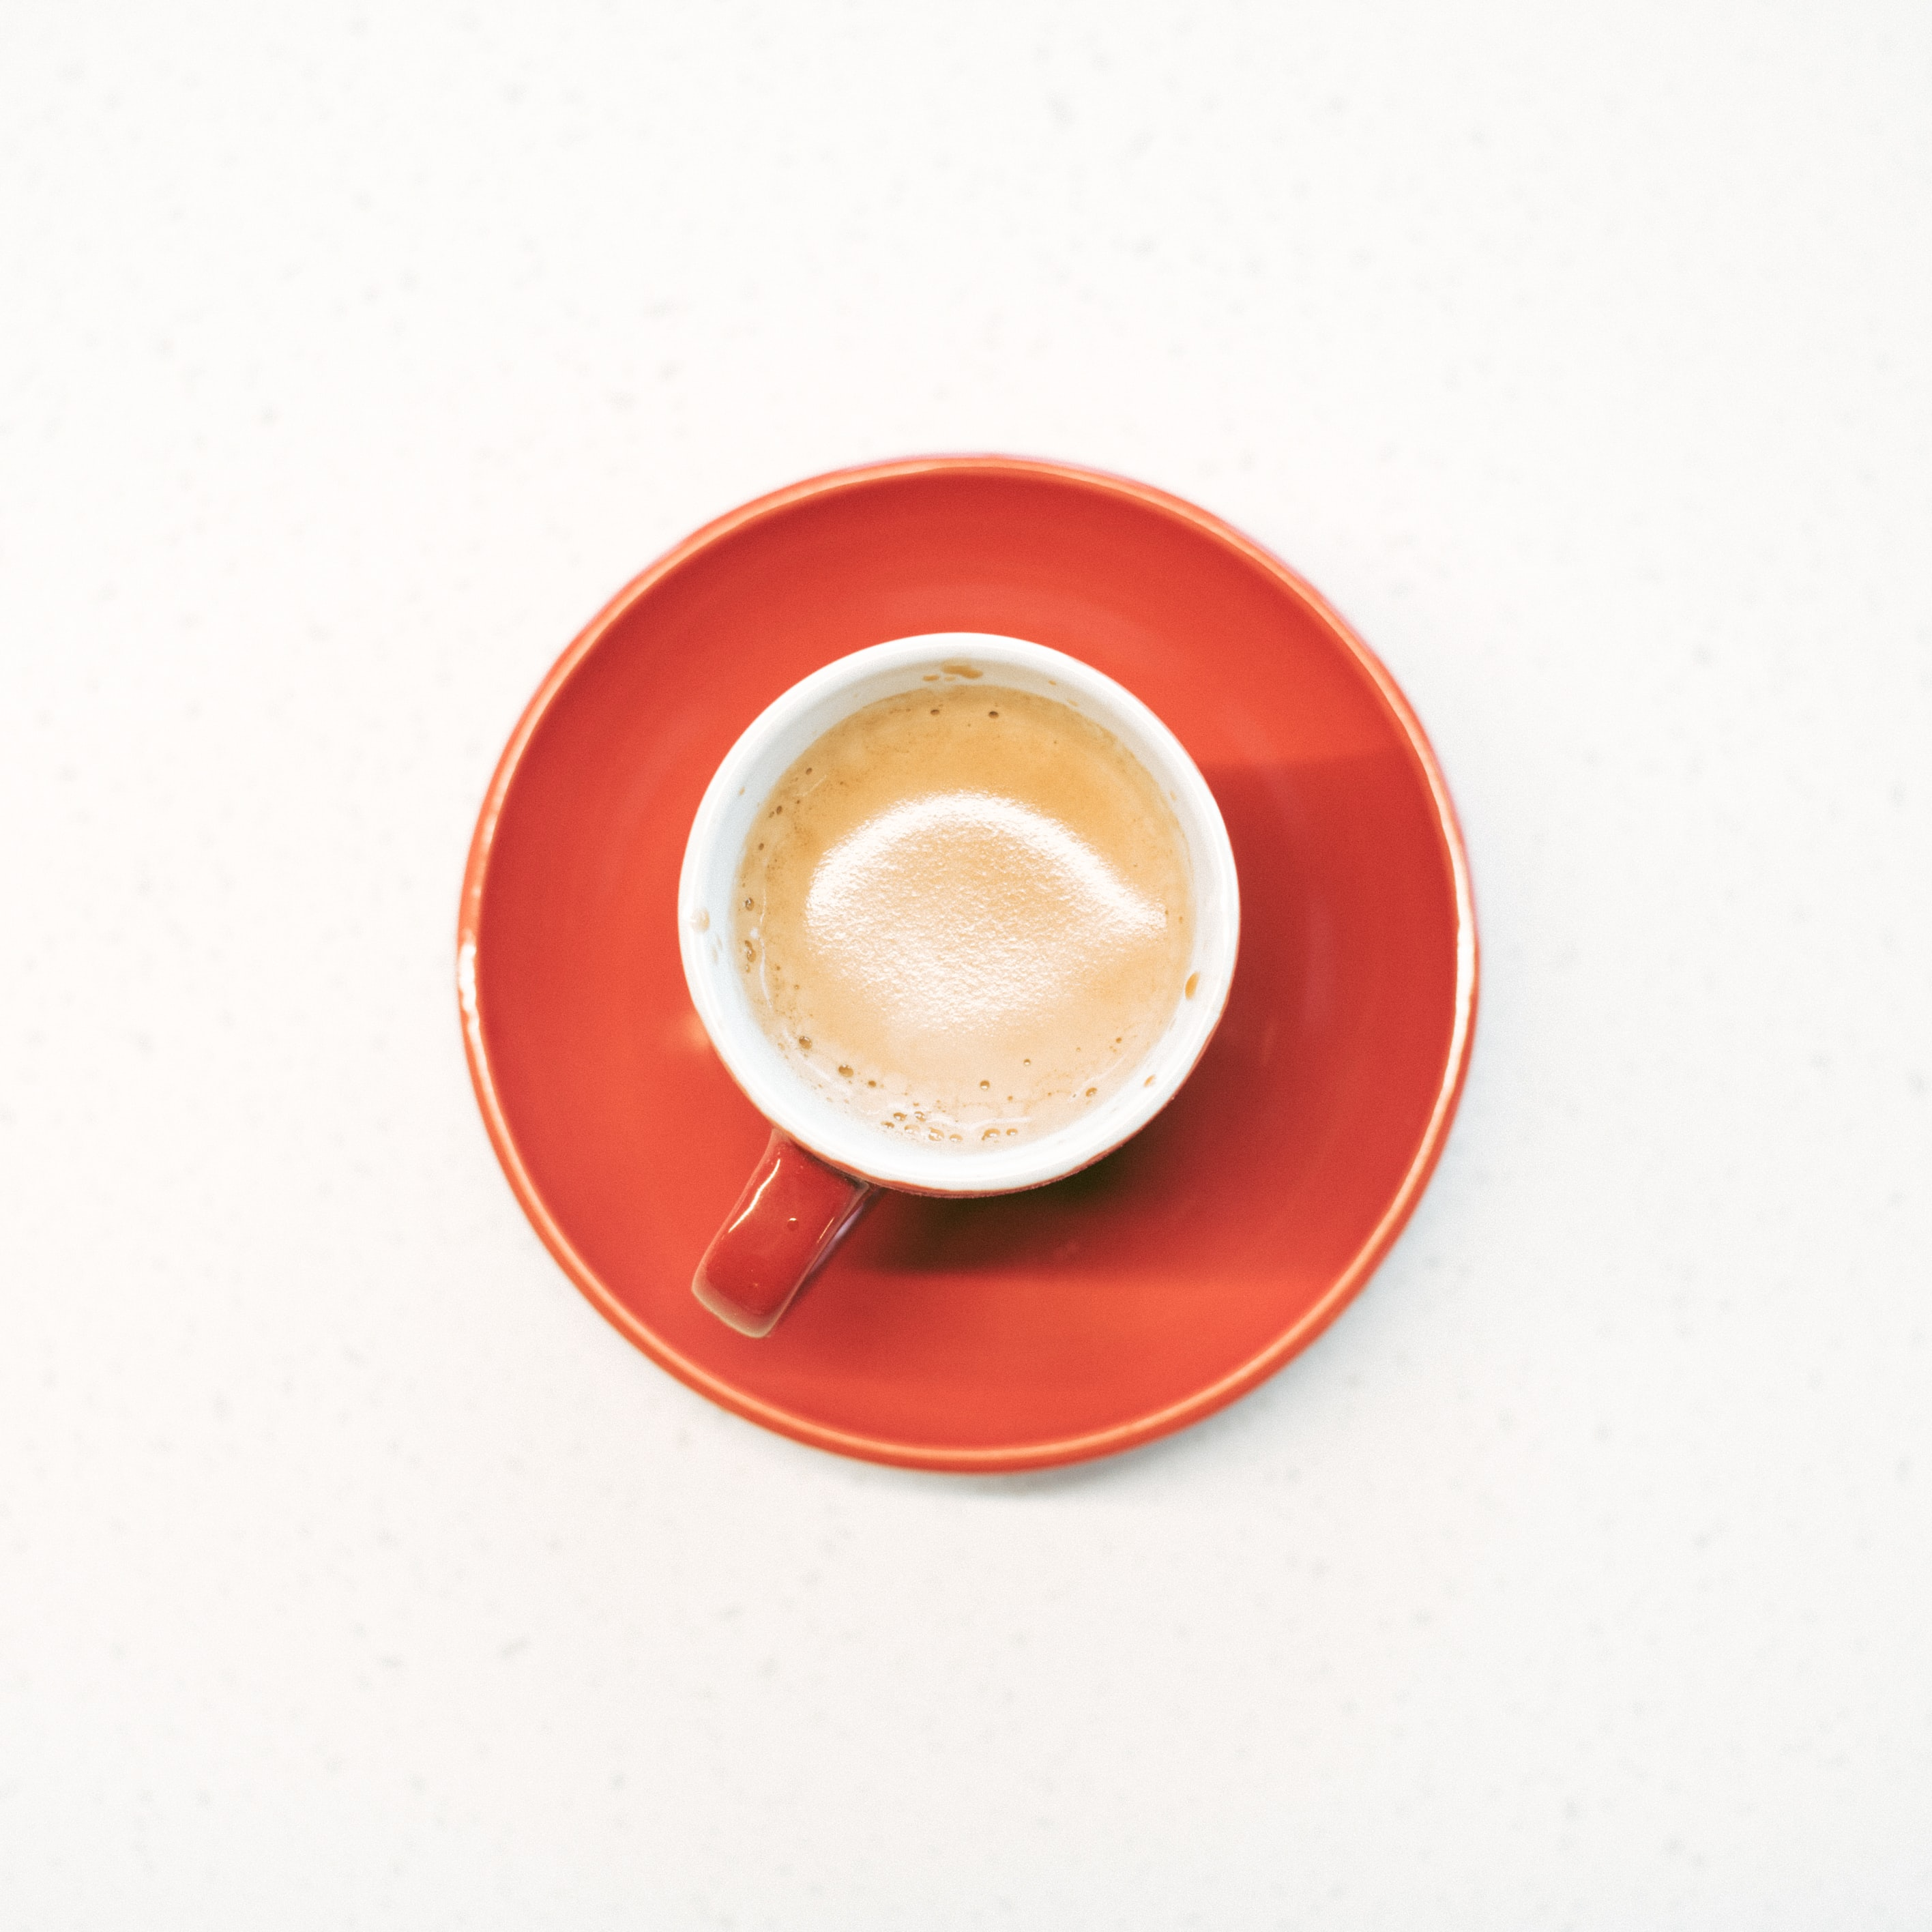 $1 coffee in July for Texas coffee lovers